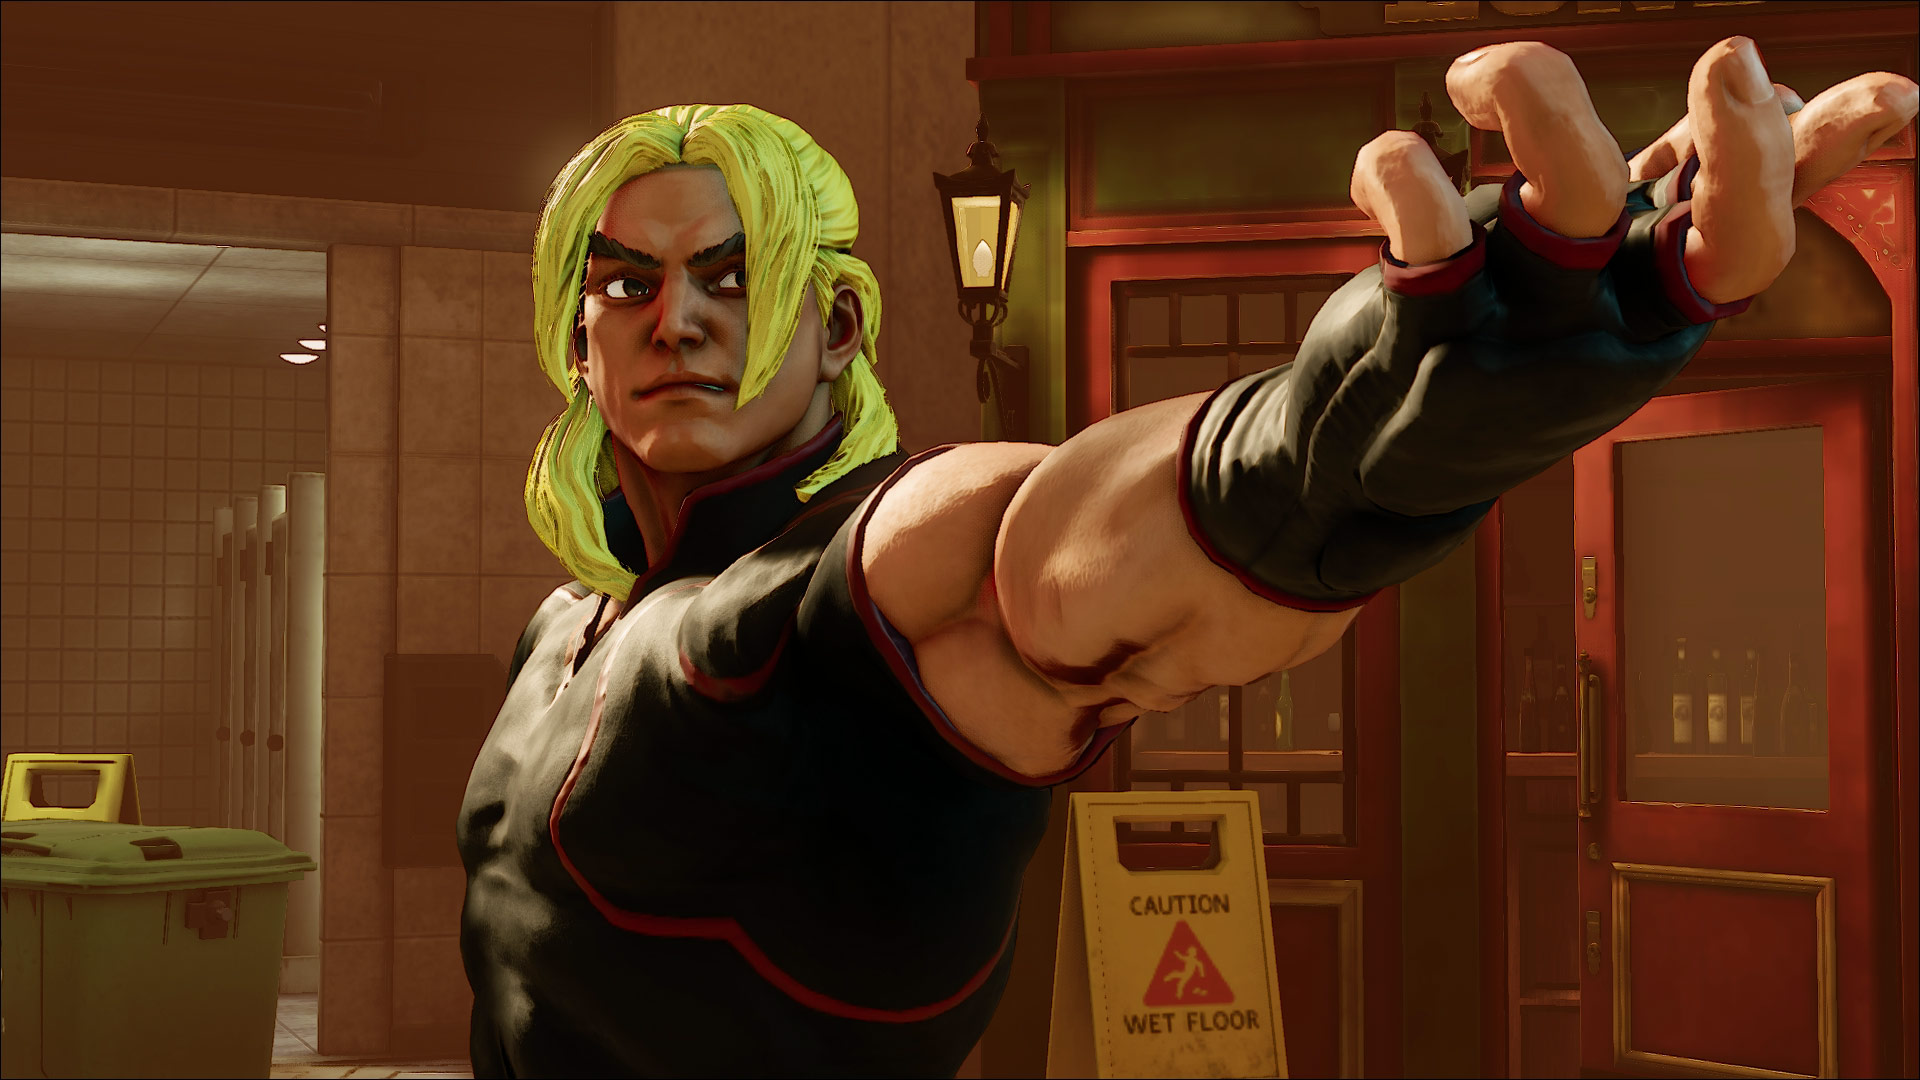 Ken Street Fighter 5 SDCC 2015 reveal 4 out of 13 image gallery